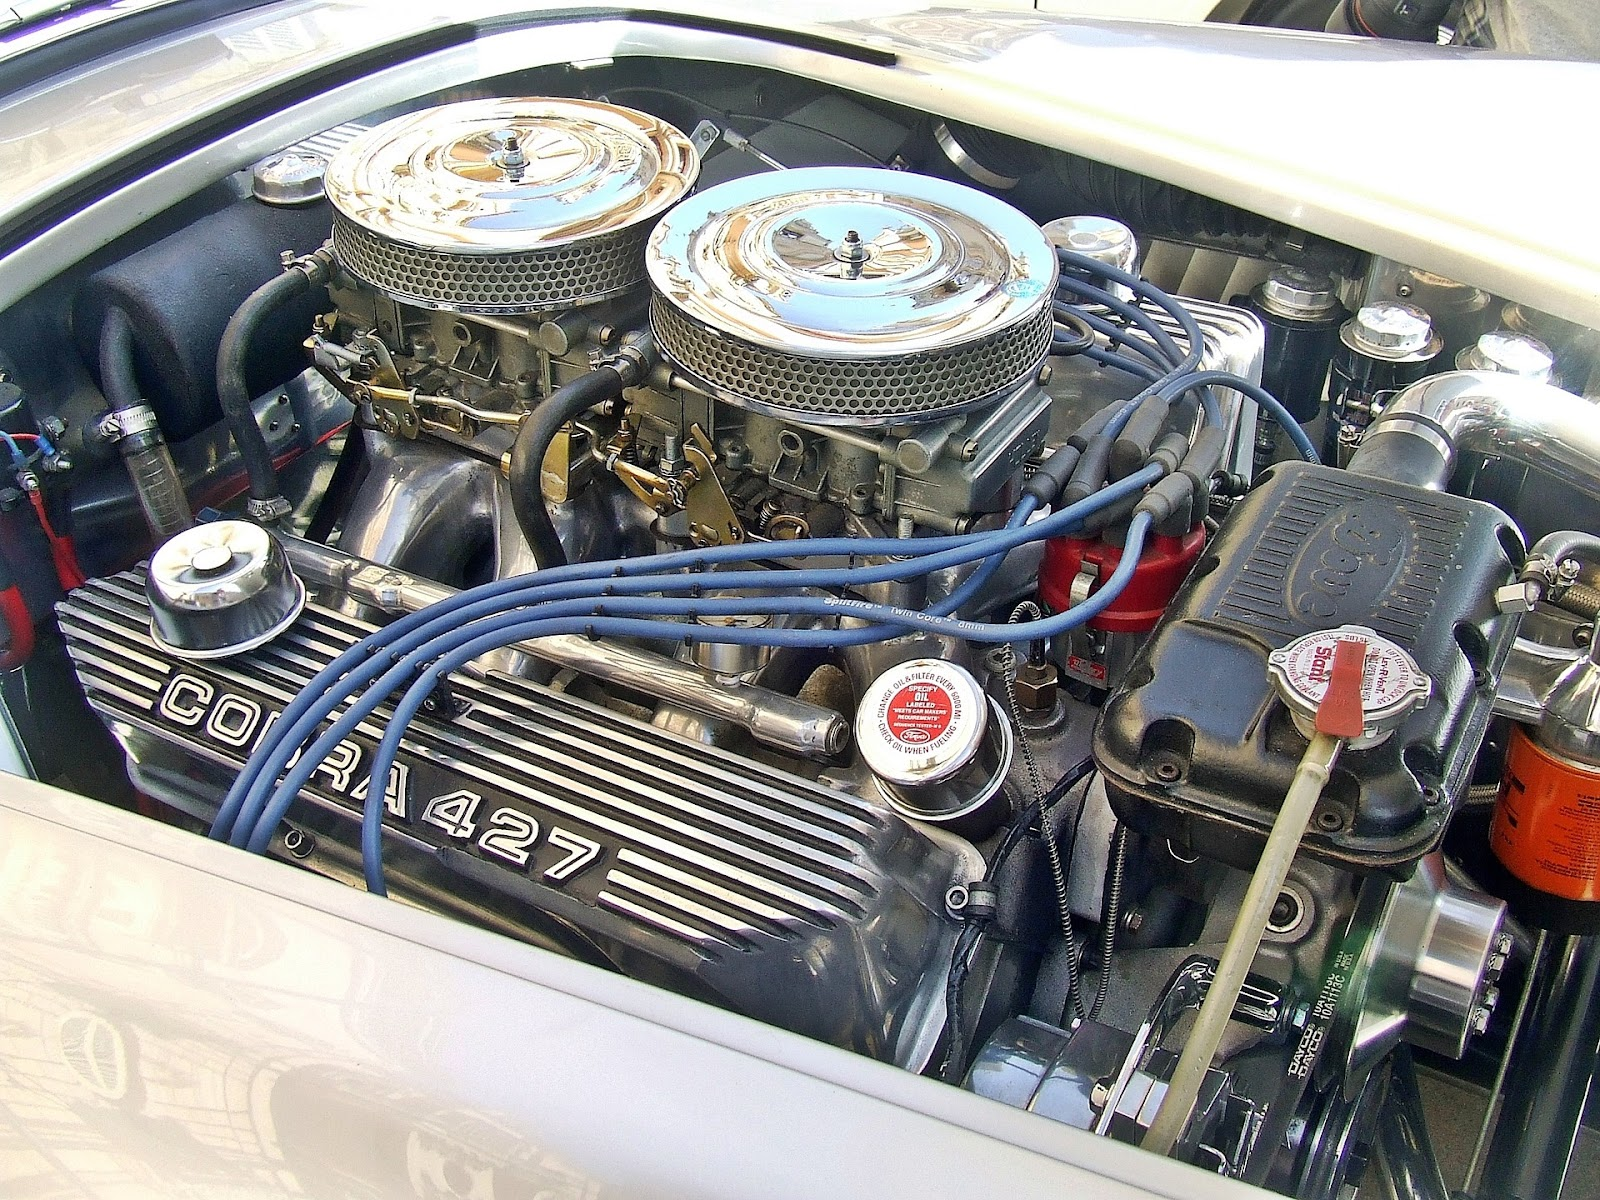 car-engine-1044236_1920.jpg